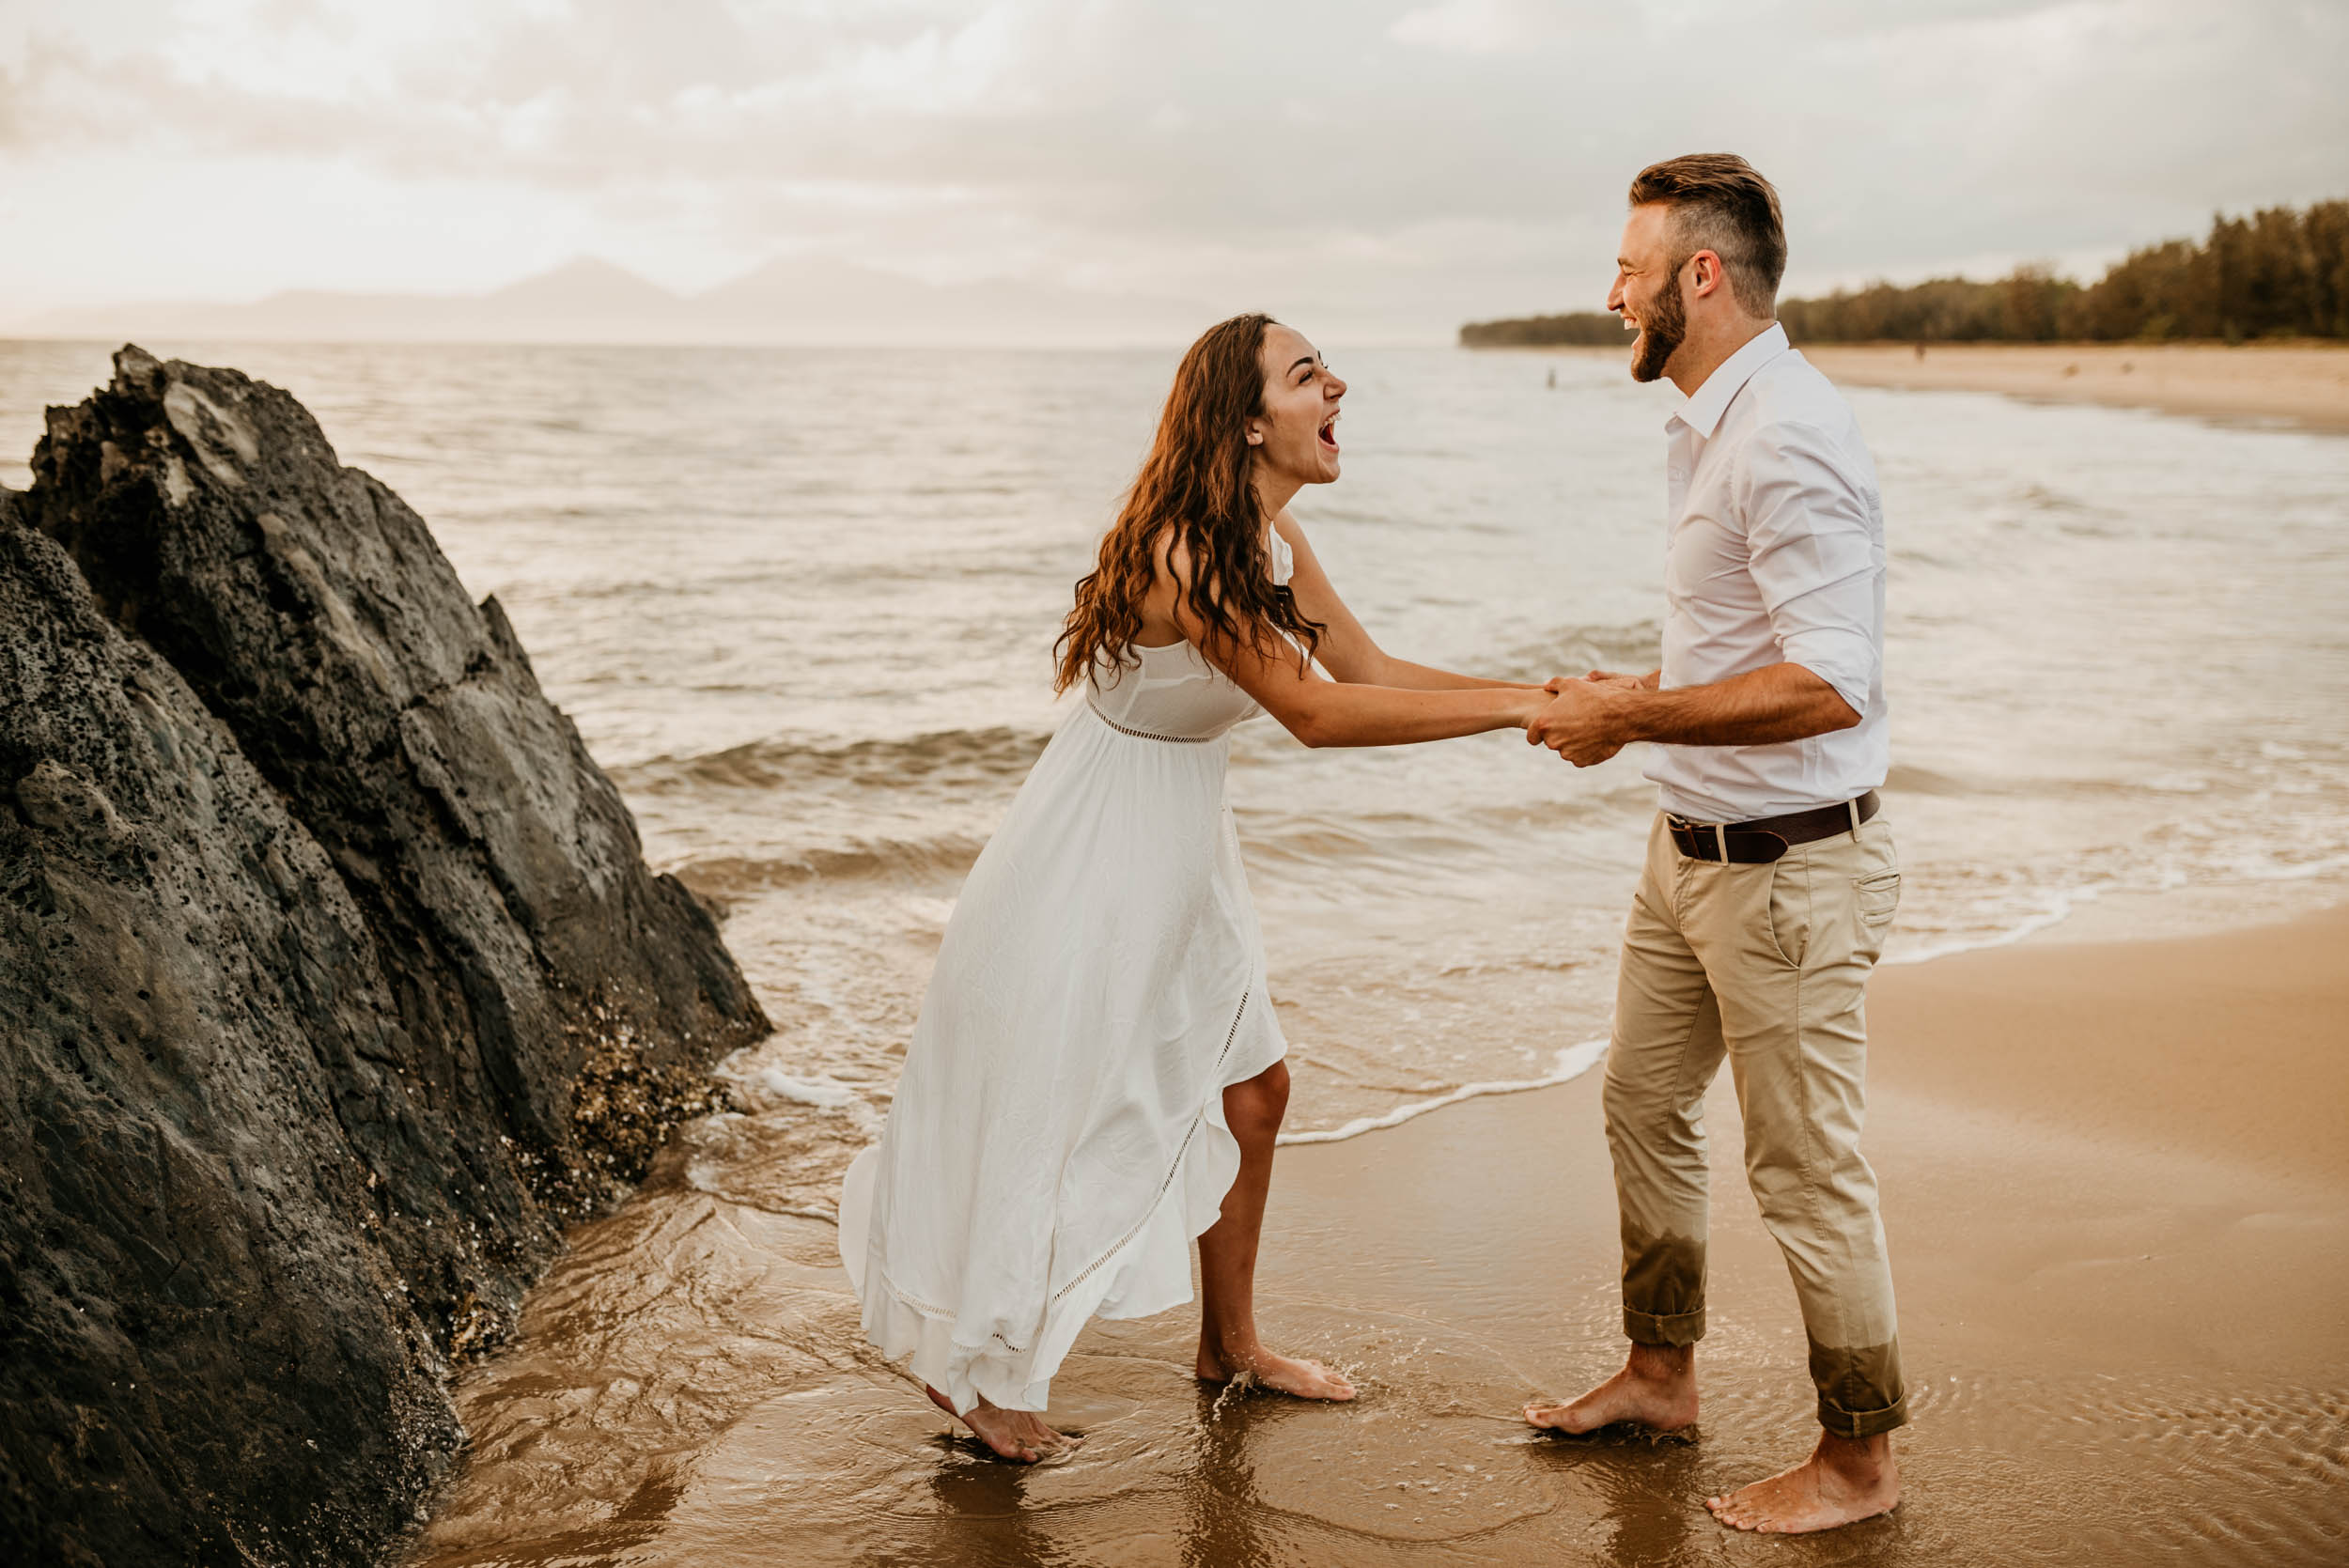 The Raw Photographer - Cairns Wedding Photographer - Engaged Engagement - Beach location - Candid Photography Queensland-32.jpg